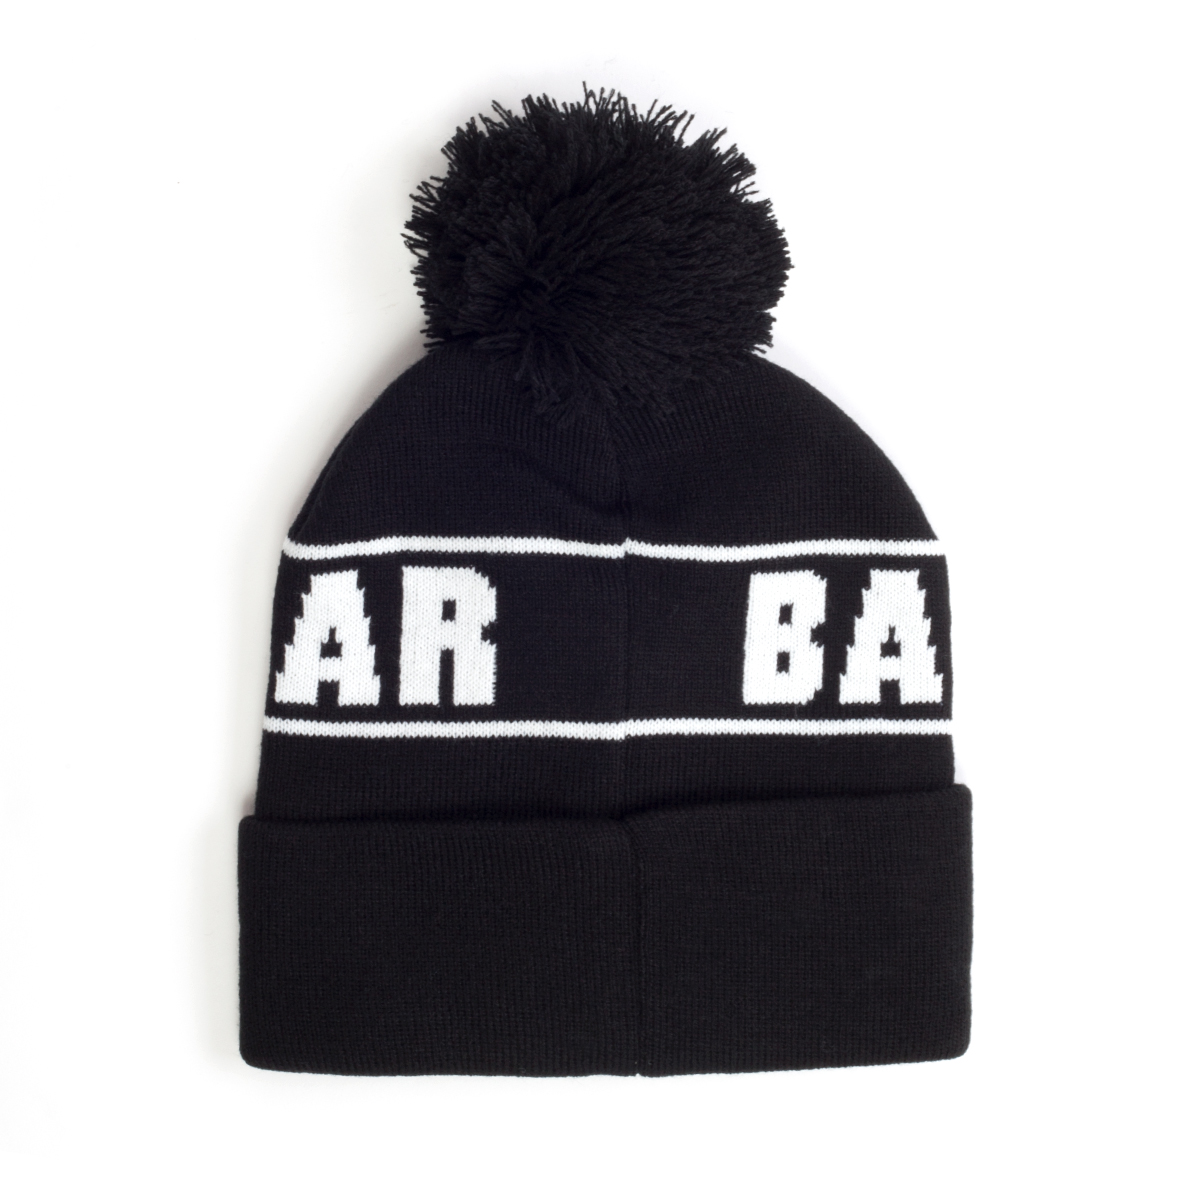 Black Custom Patch Knit Beanie